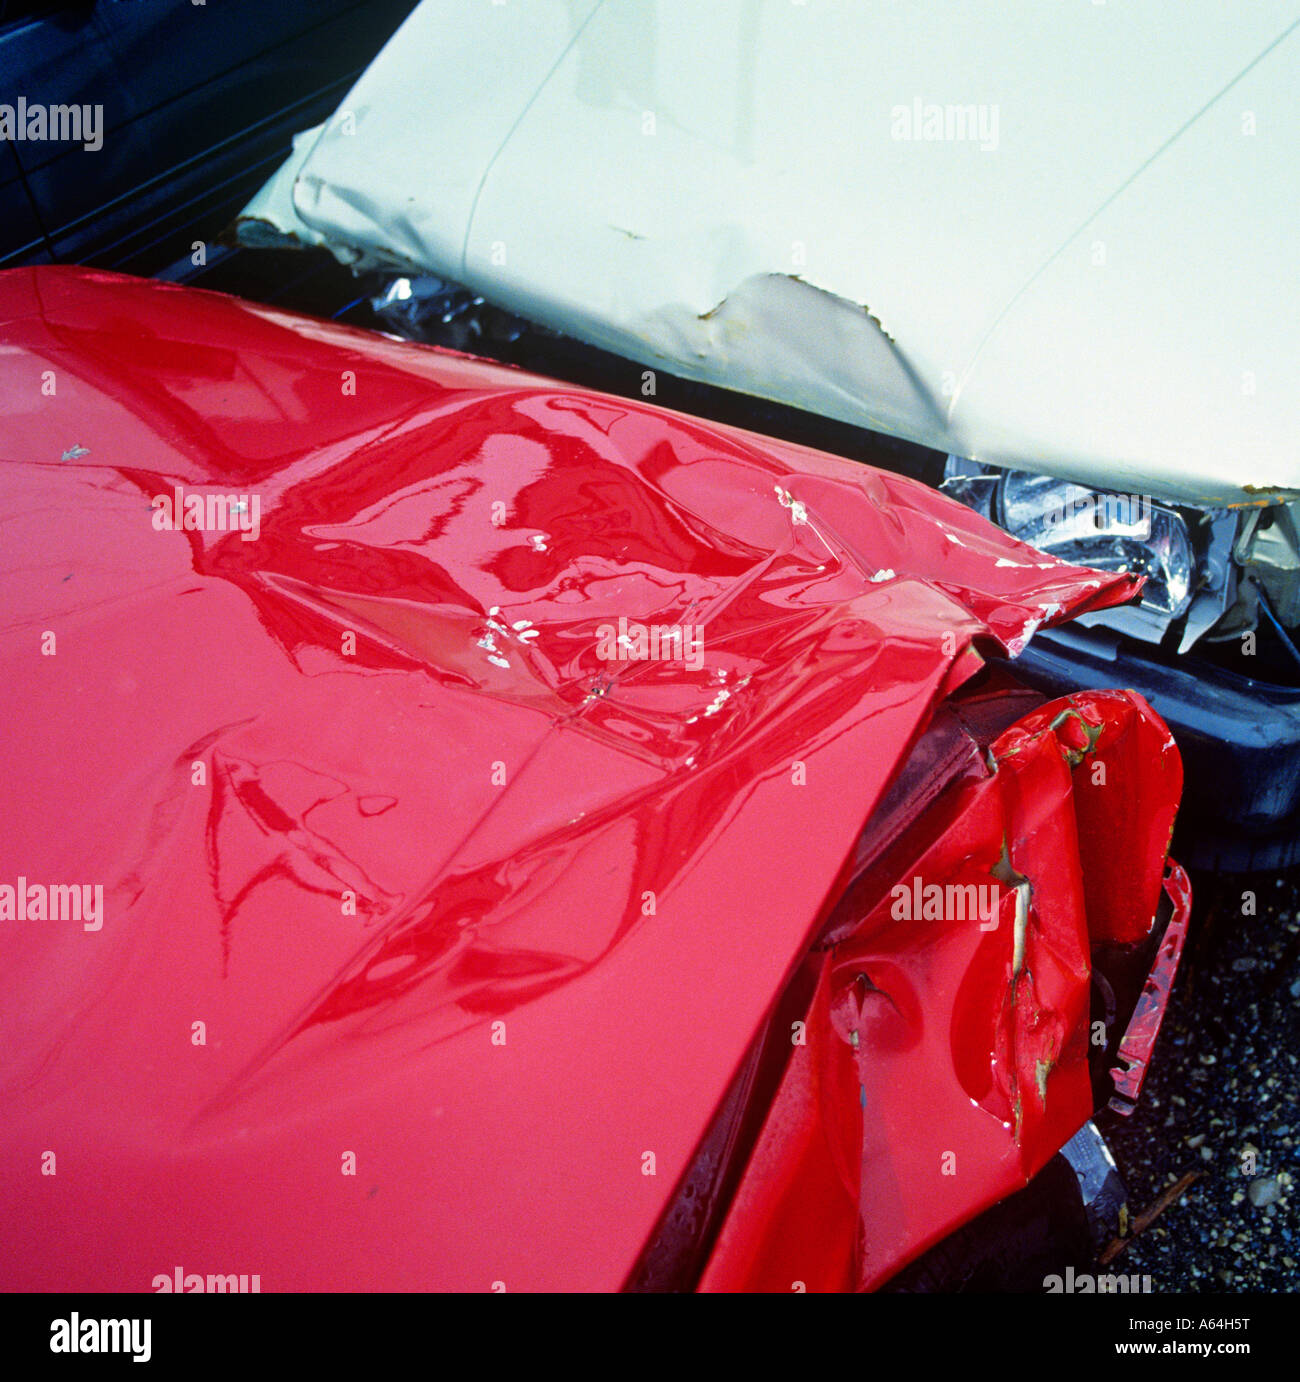 Accident Damaged Cars Stock Photos & Accident Damaged Cars